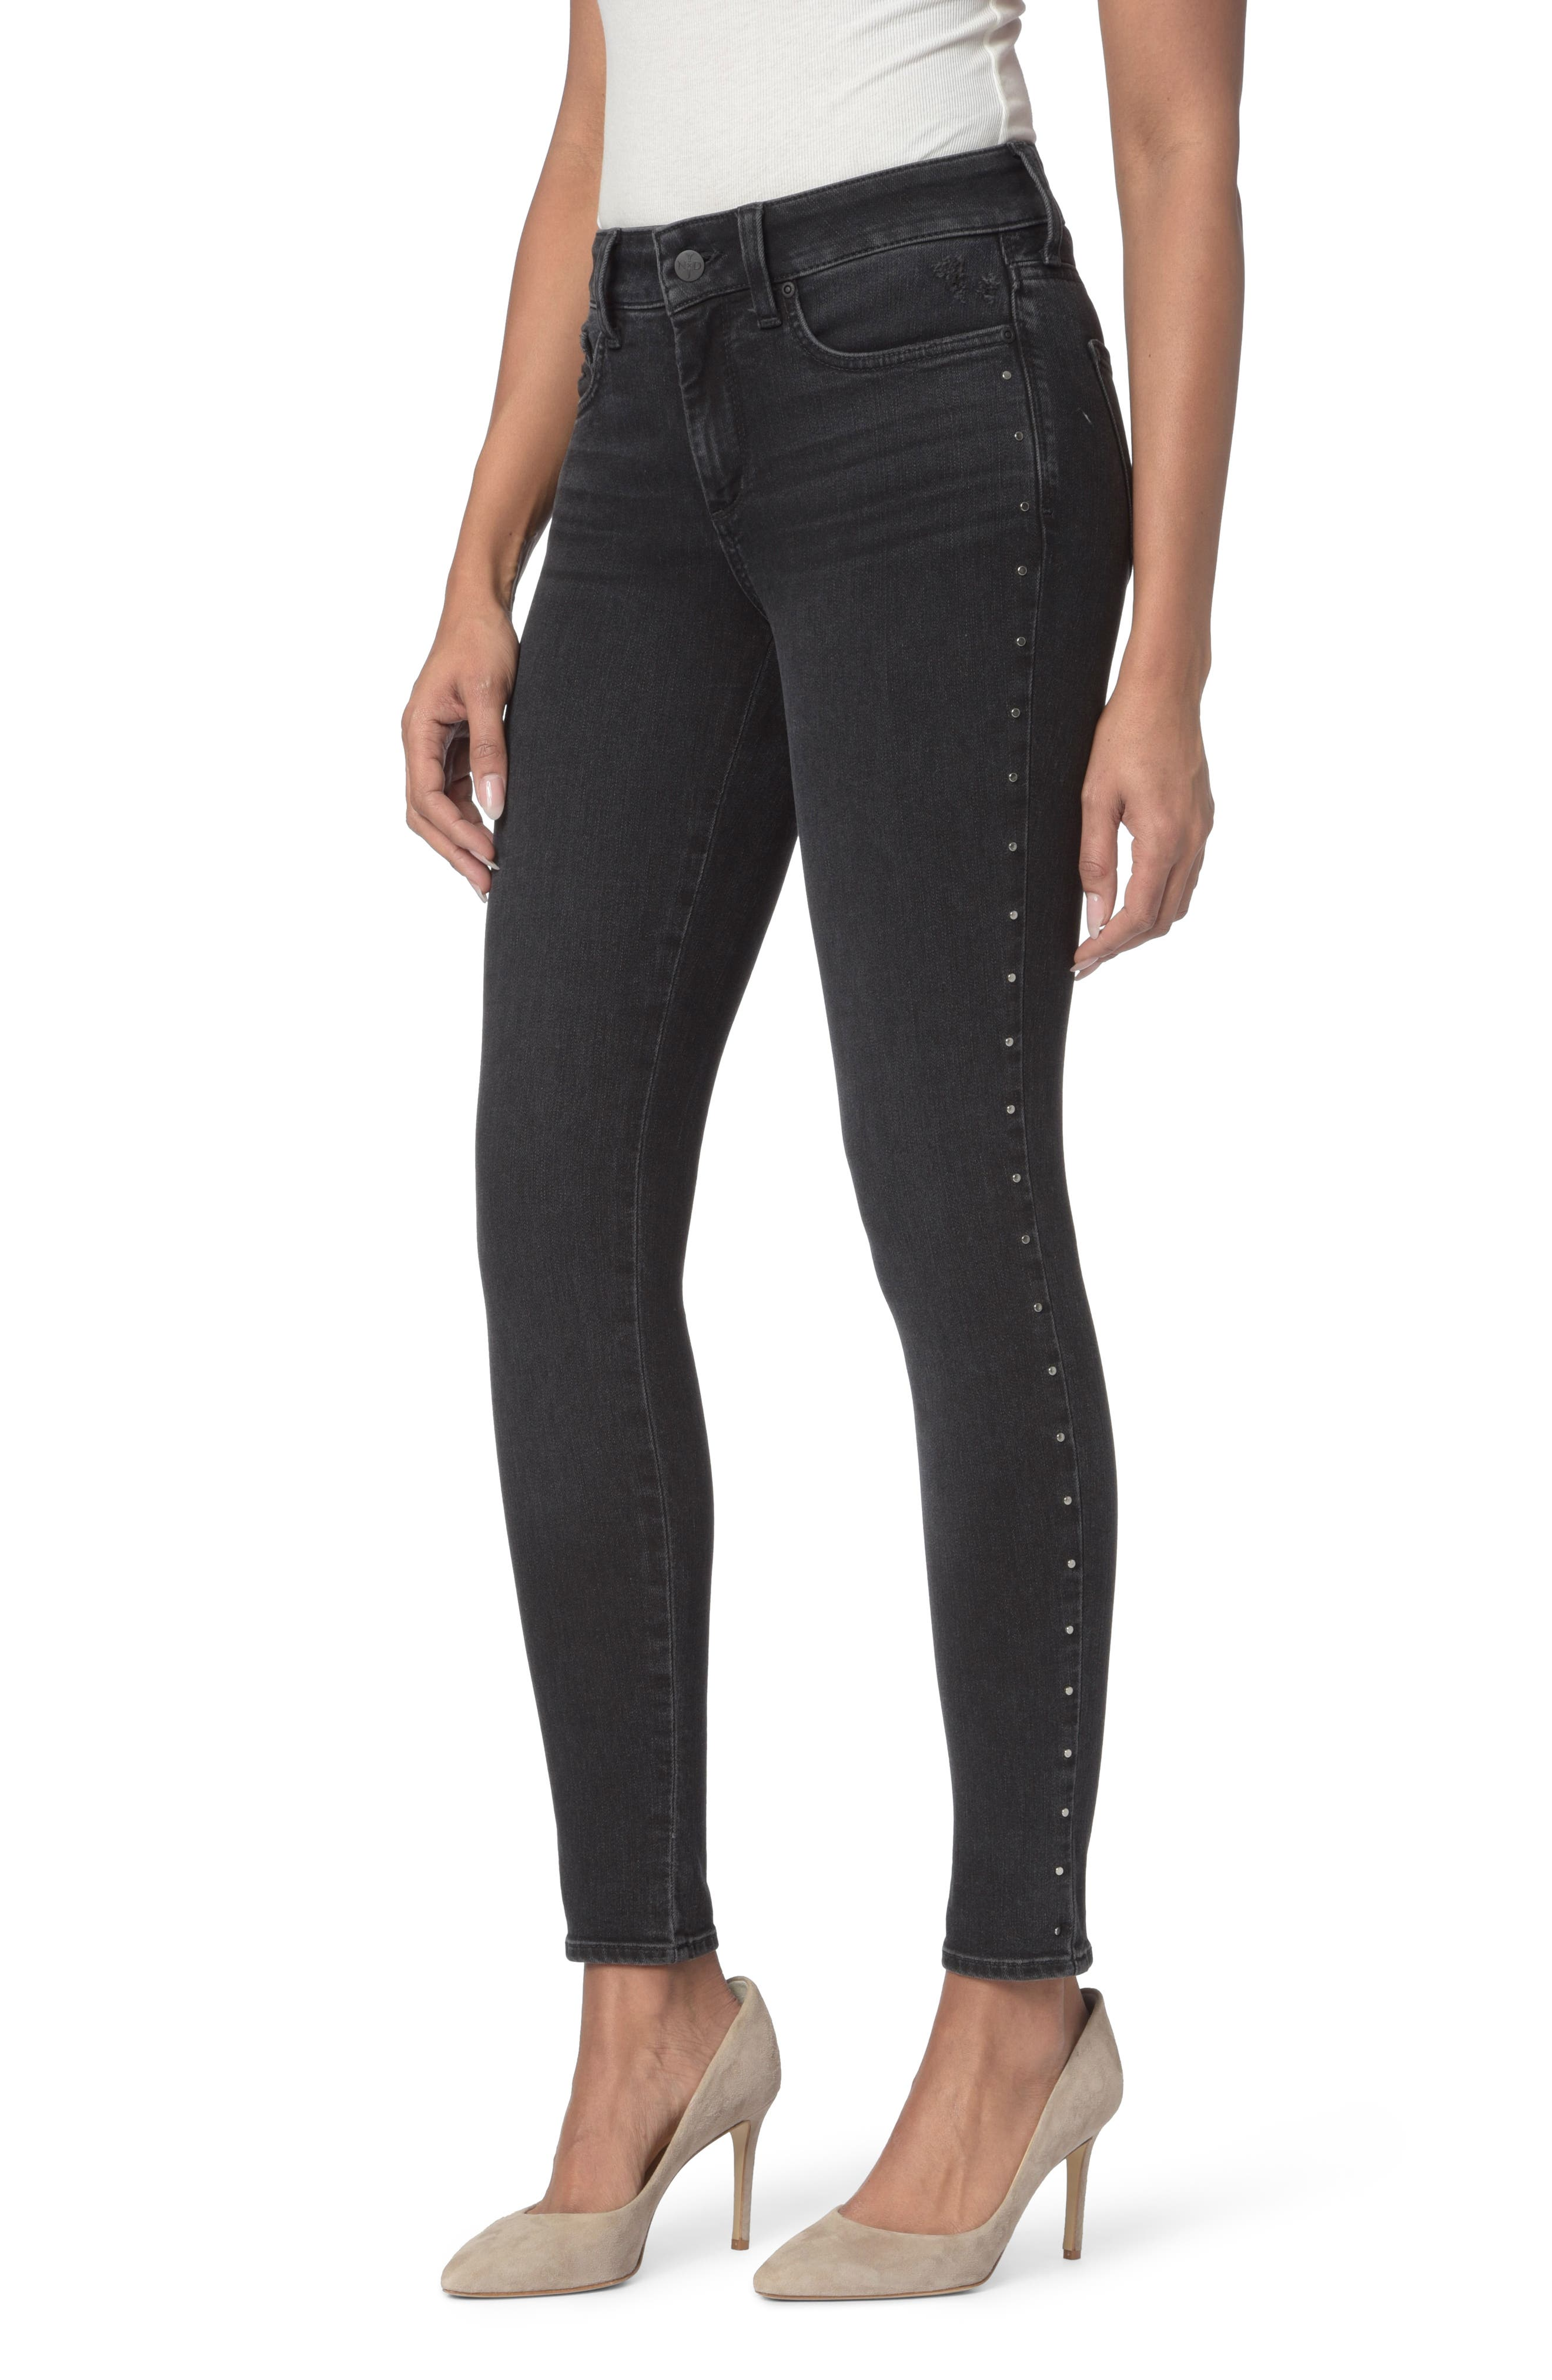 Ami Embellished Stretch Skinny Jeans,                         Main,                         color, Campaign